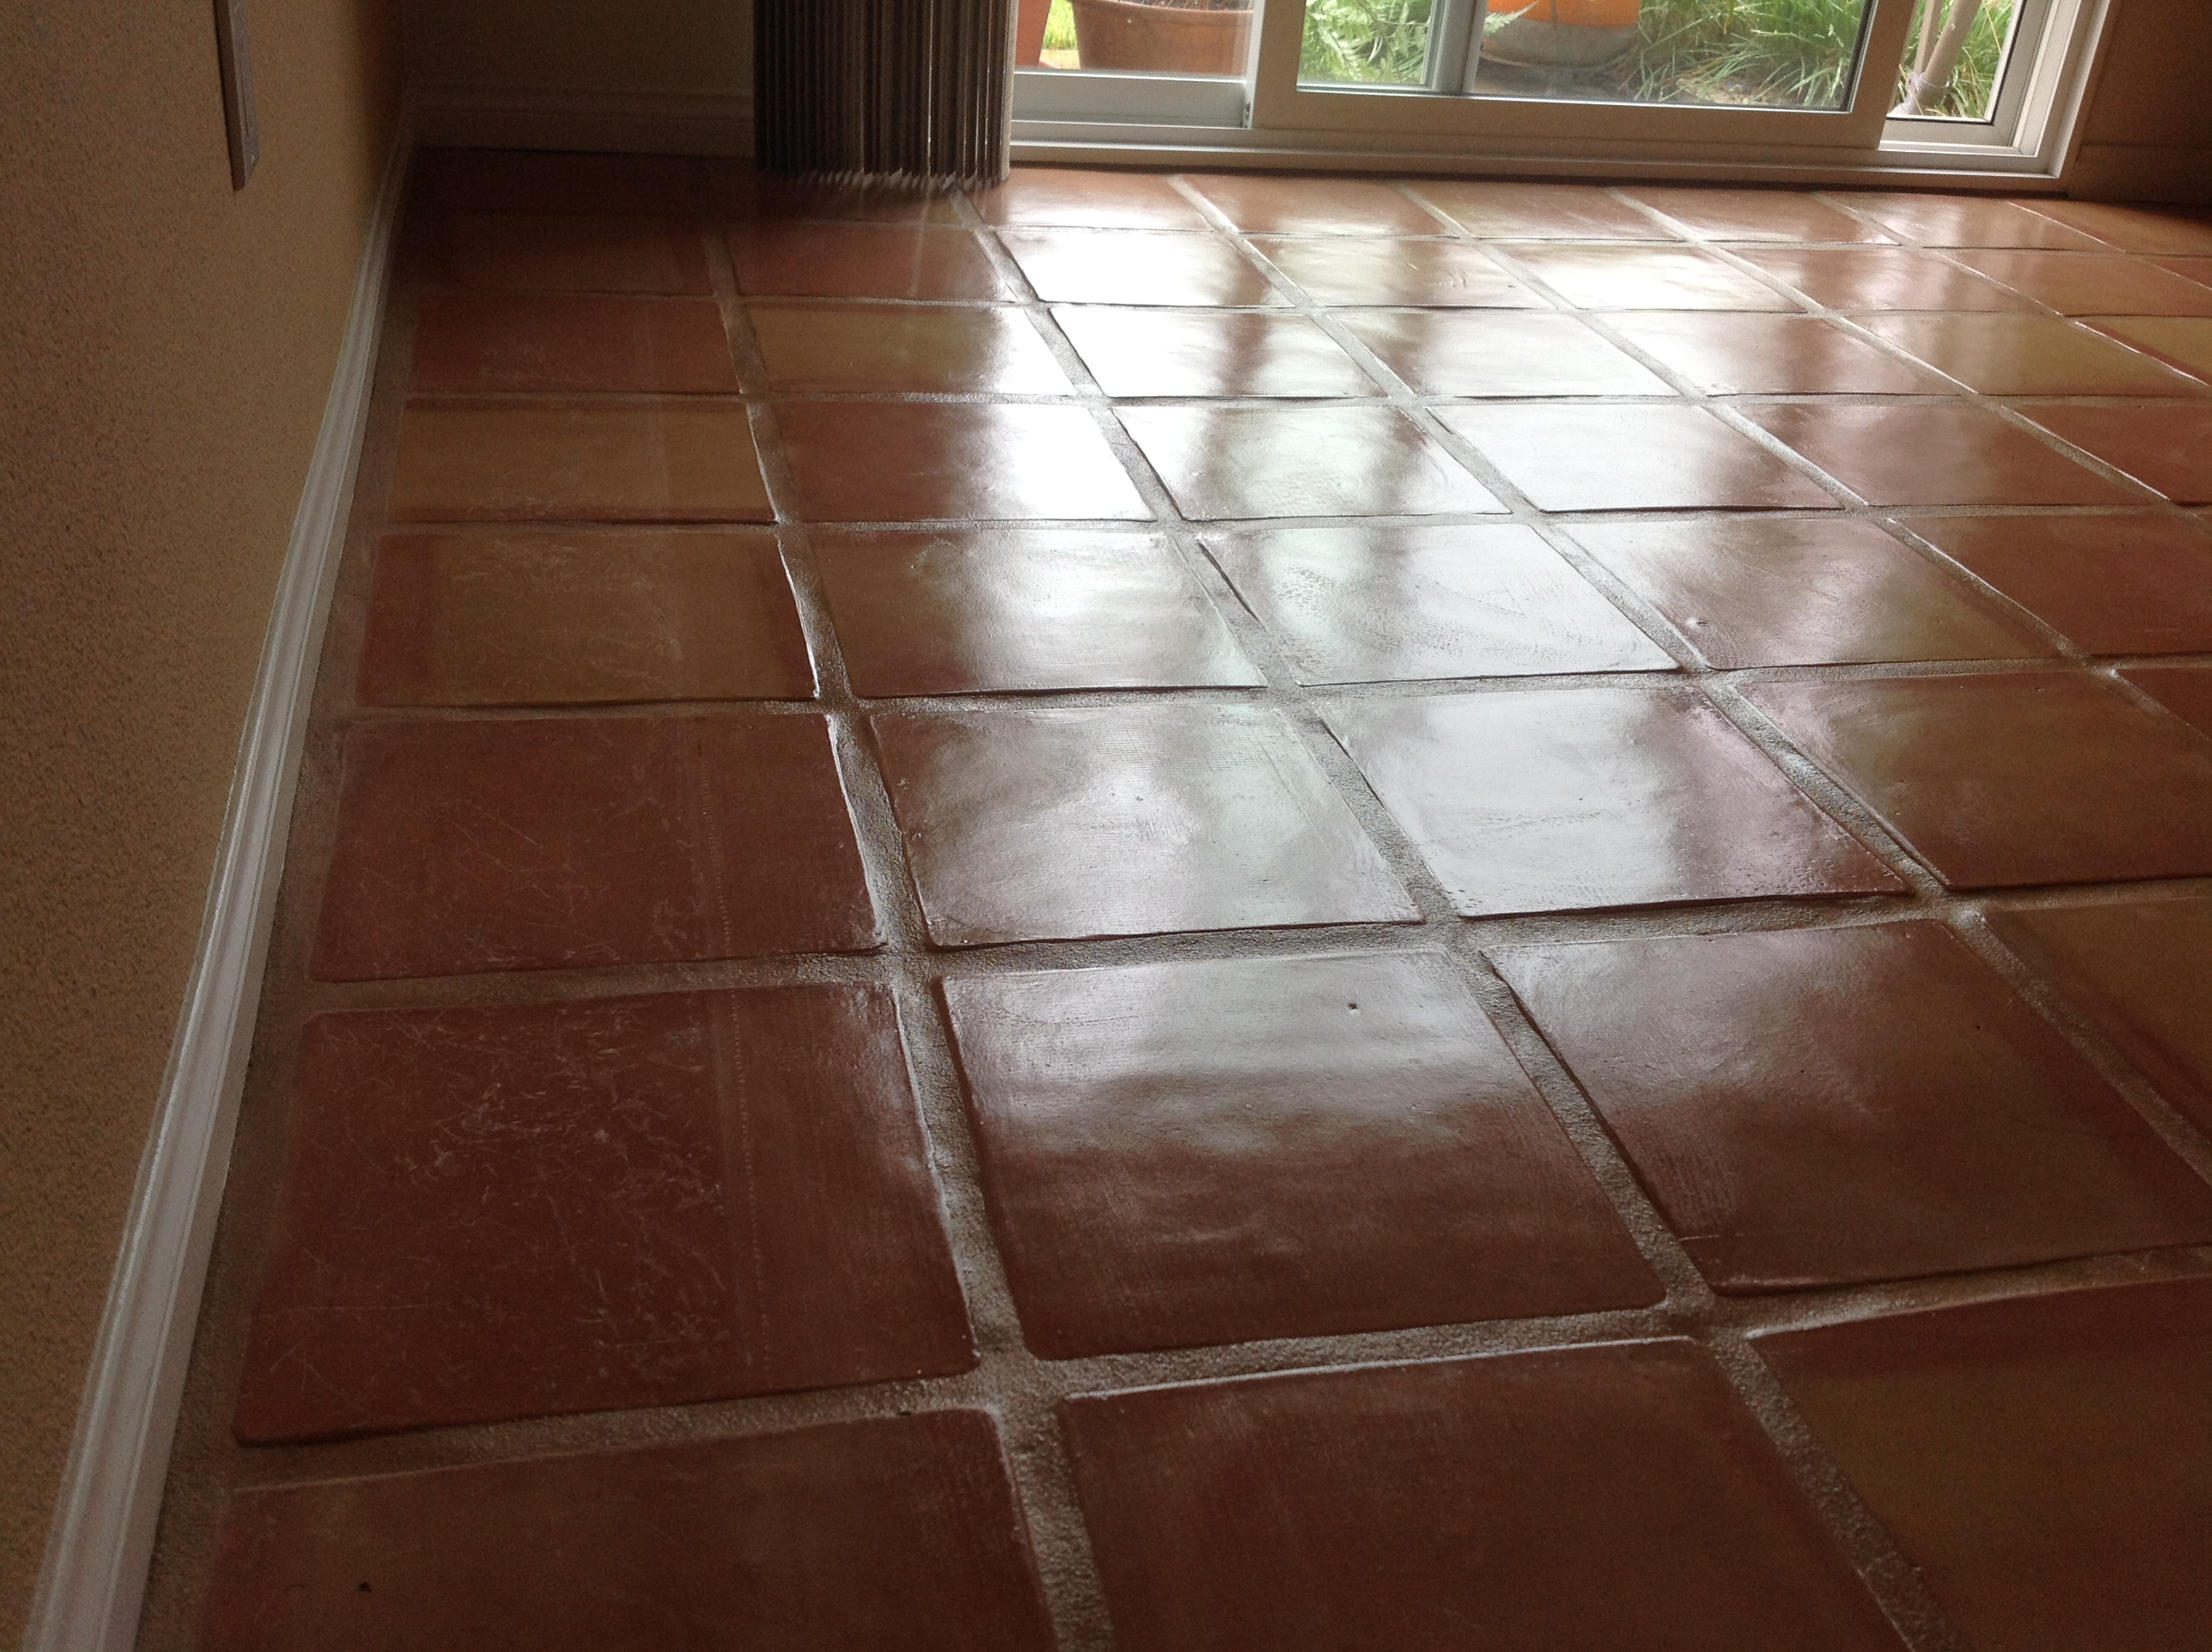 Saltillo Tile Dirty, Peeling, Dull? California Tile Refinishing